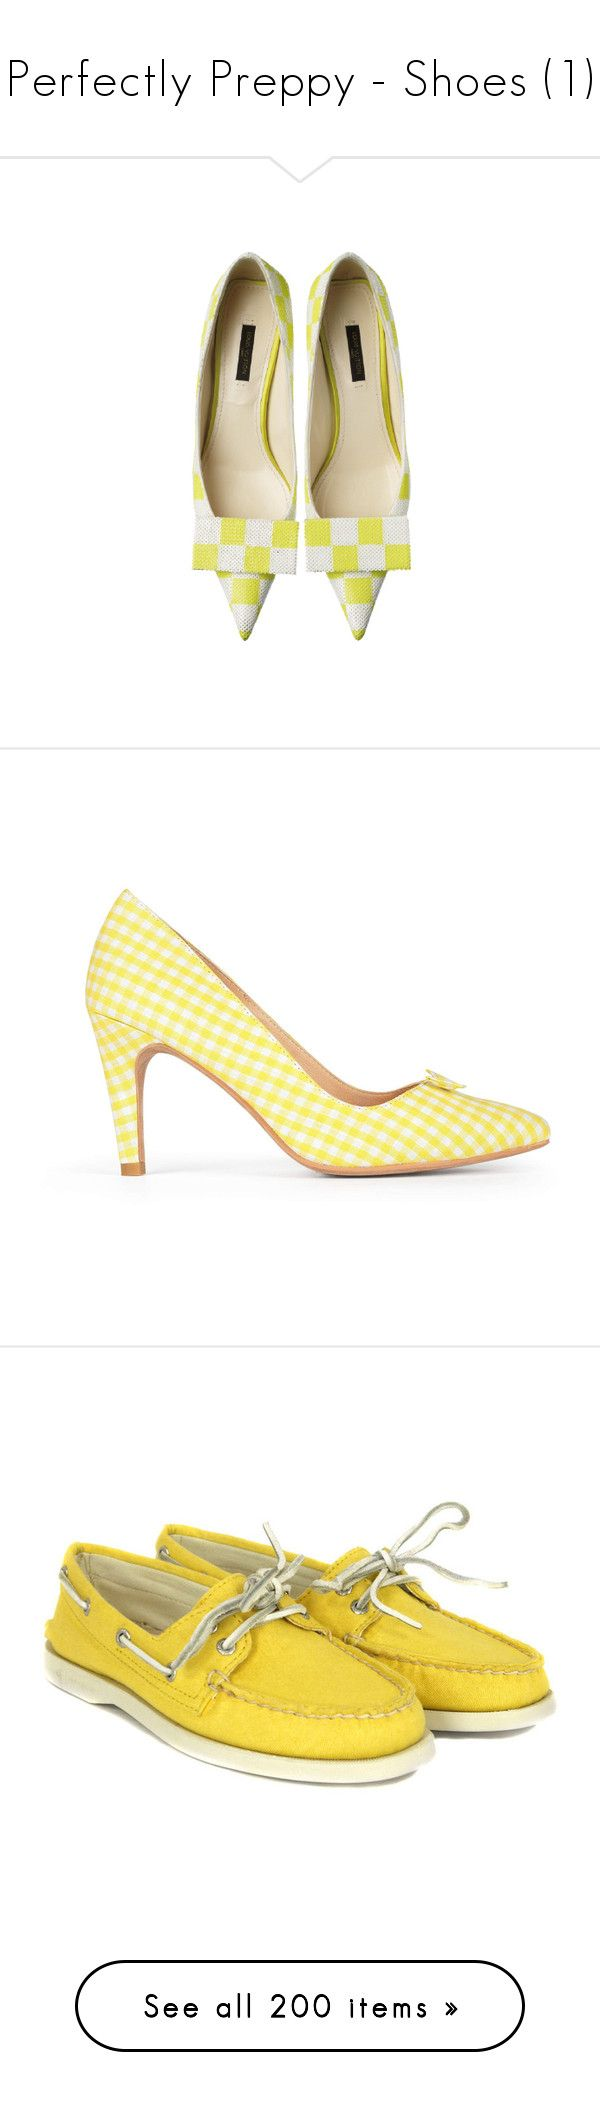 Perfectly Preppy - Shoes (1) by metalheavy on Polyvore featuring polyvore, women's fashion, shoes, pumps, flats, heels, louis vuitton, flat pumps, heeled flats, flat pump shoes, louis vuitton pumps, louis vuitton flats, sneakers, clothing, sapatos, women, yellow shoes, canvas deck shoes, lace up flat shoes, laced up flats, sperry top-sider shoes, sandals, t-bar sandals, t strap shoes, t strap flat shoes, t bar flats, bow sandals, loafers, scarpe, yellow, yellow suede shoes, flat shoes, suede…